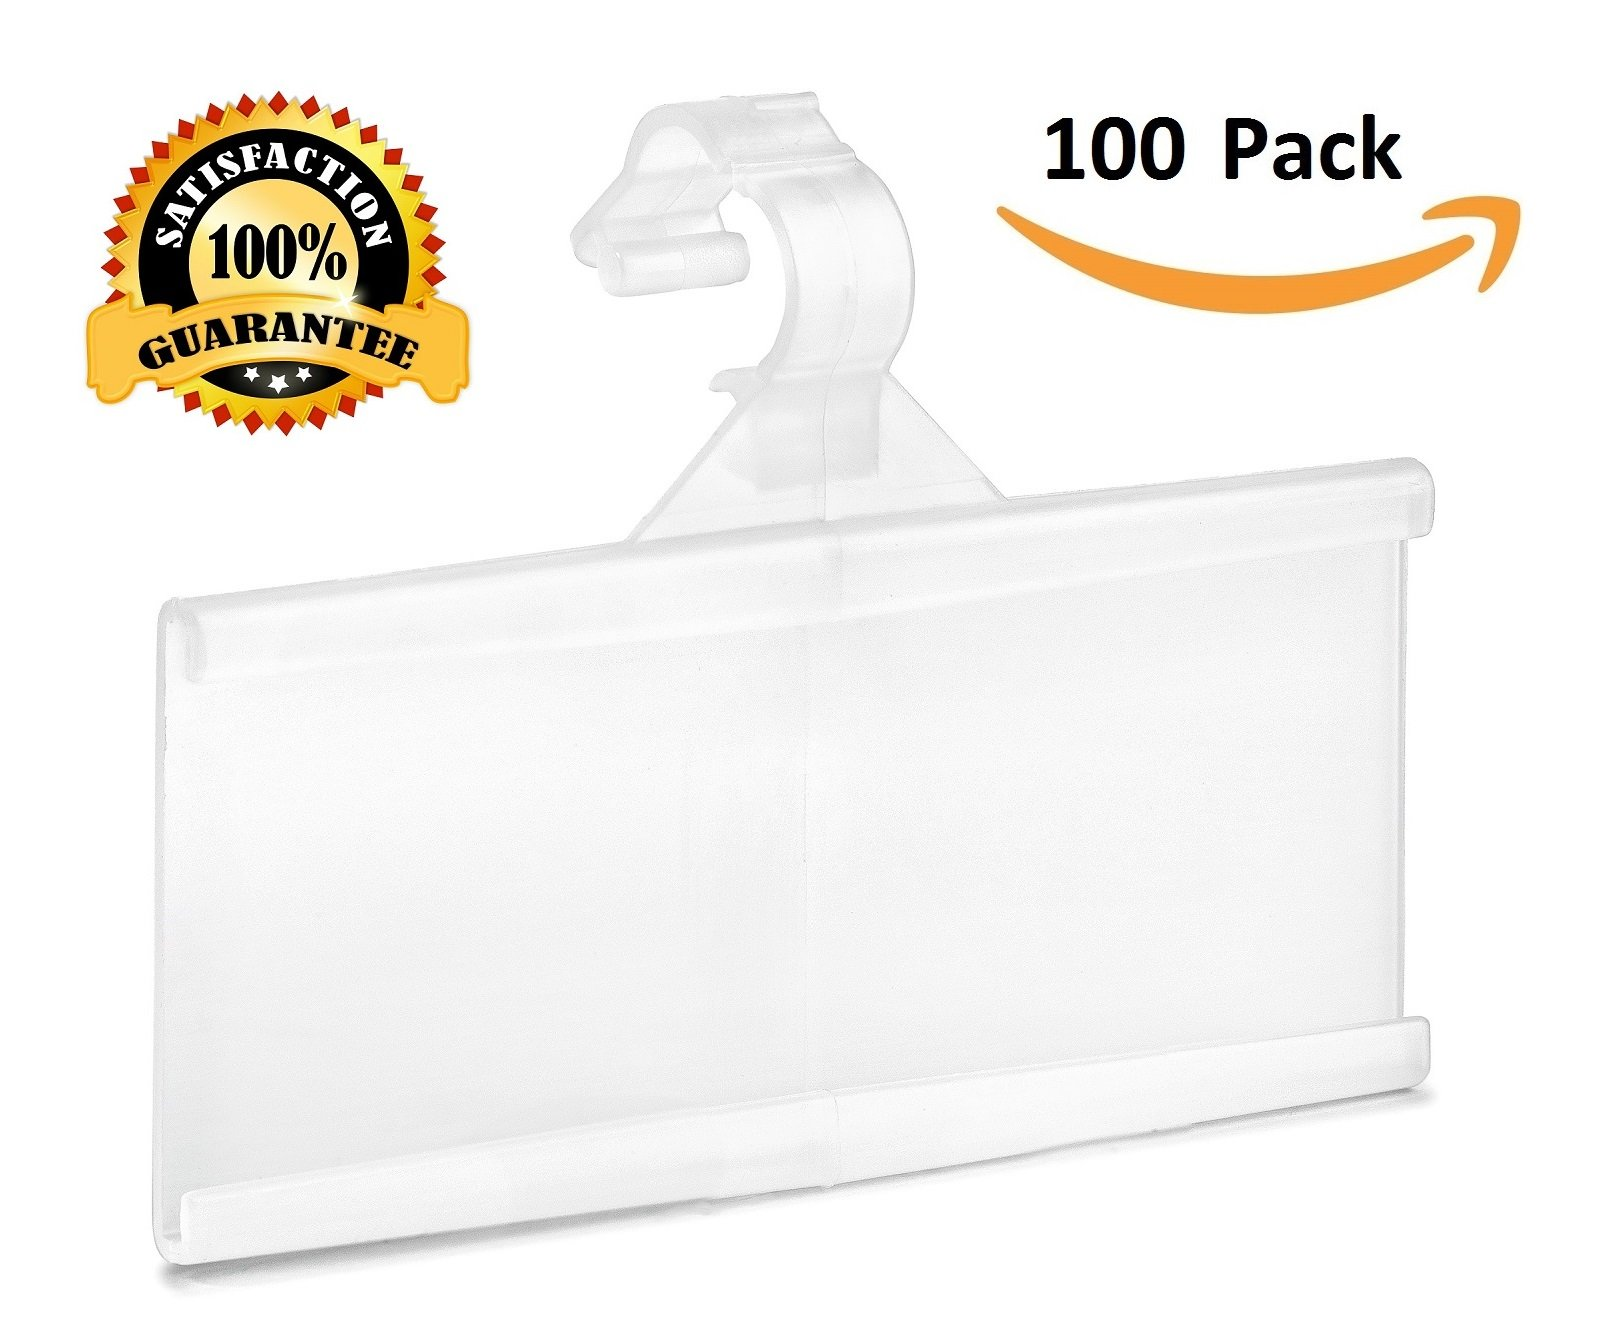 Pack of 100 – Plastic Wire Shelf Label Holder, Sign and Ticket Holder, Easy Clip Design with Tight Snap Lock Closure. Height, 1-1/4'' X Width, 3''